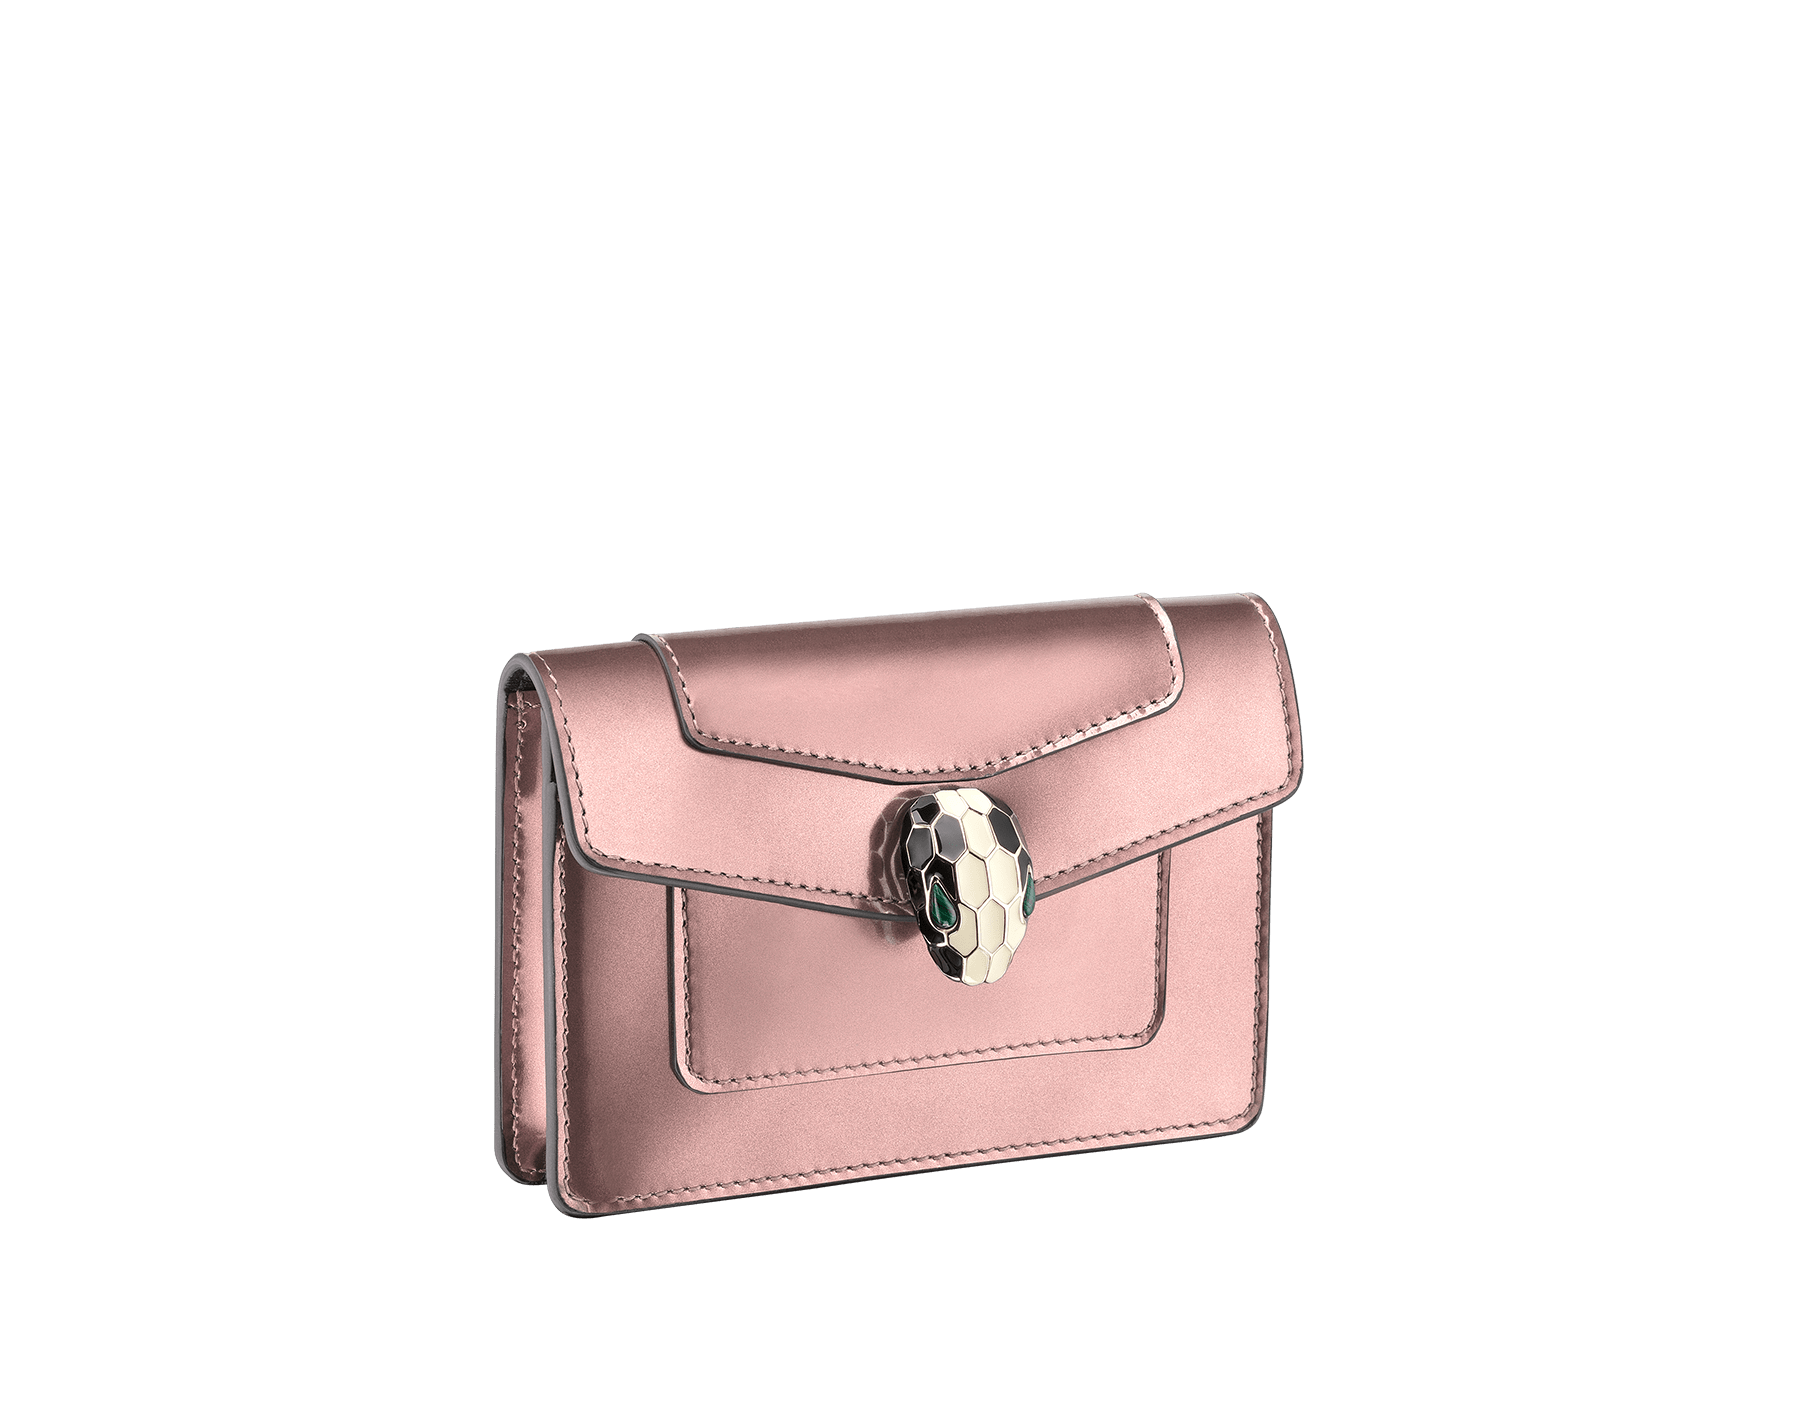 Pocket credit card holder in rose quartz brushed metallic calf leather and black calf leather, with black nappa lining. Brass light gold plated Serpenti head stud closure in black and white enamel, with eyes in green malachite. 285820 image 1